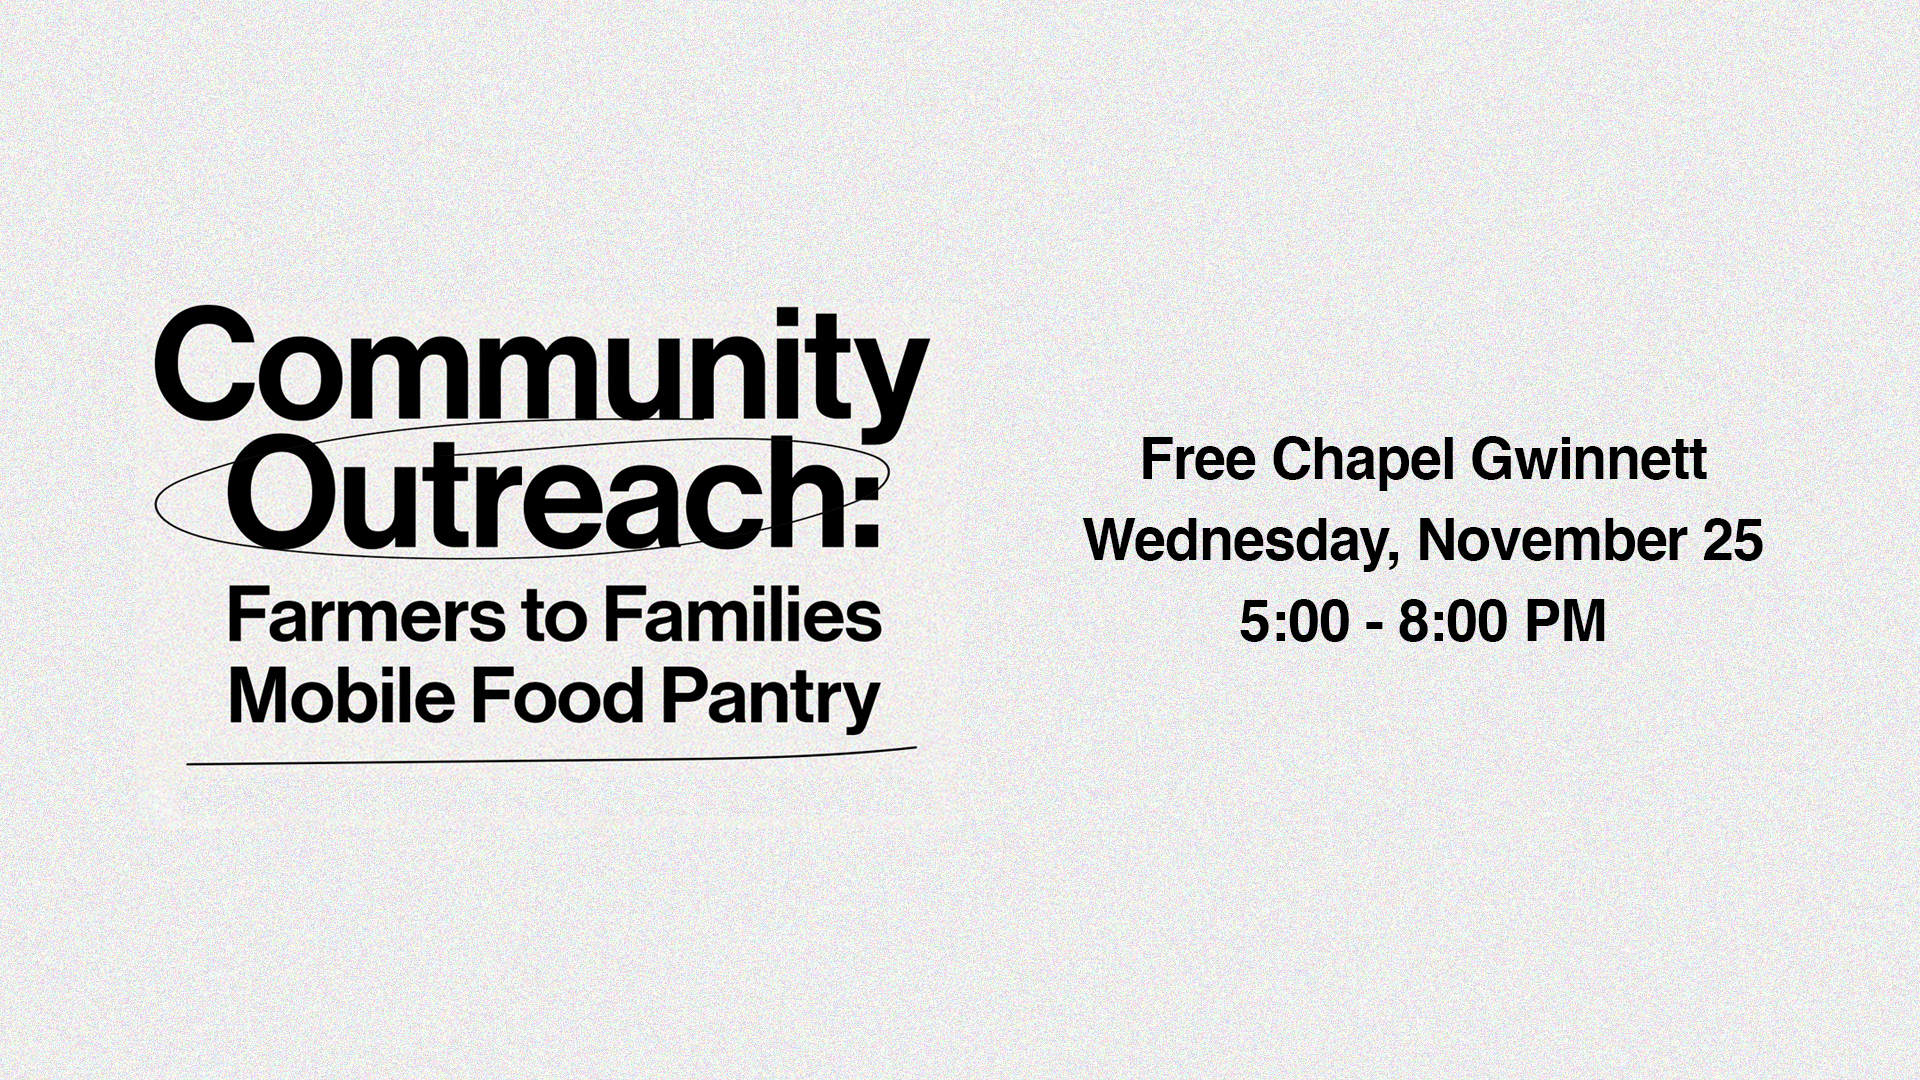 Community Outreach at the Gwinnett campus